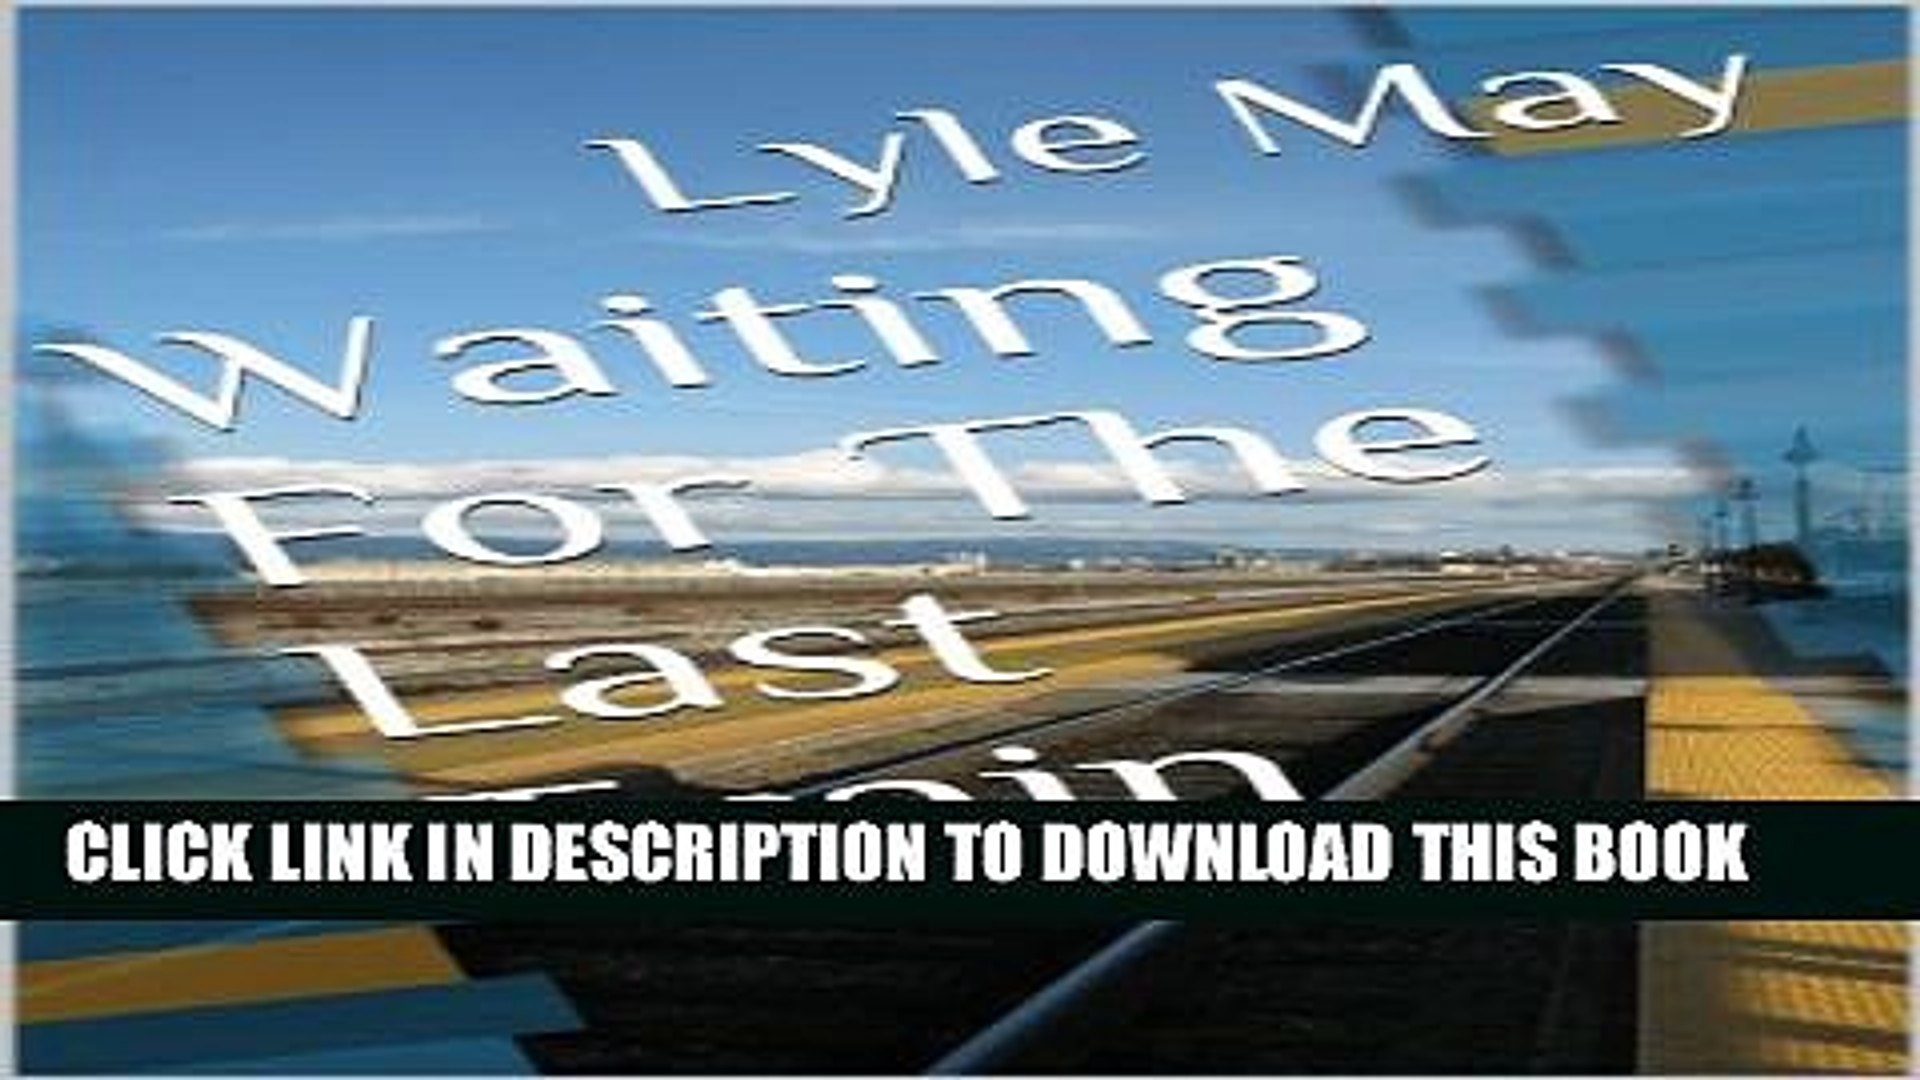 [PDF] Waiting For The Last Train Exclusive Full Ebook